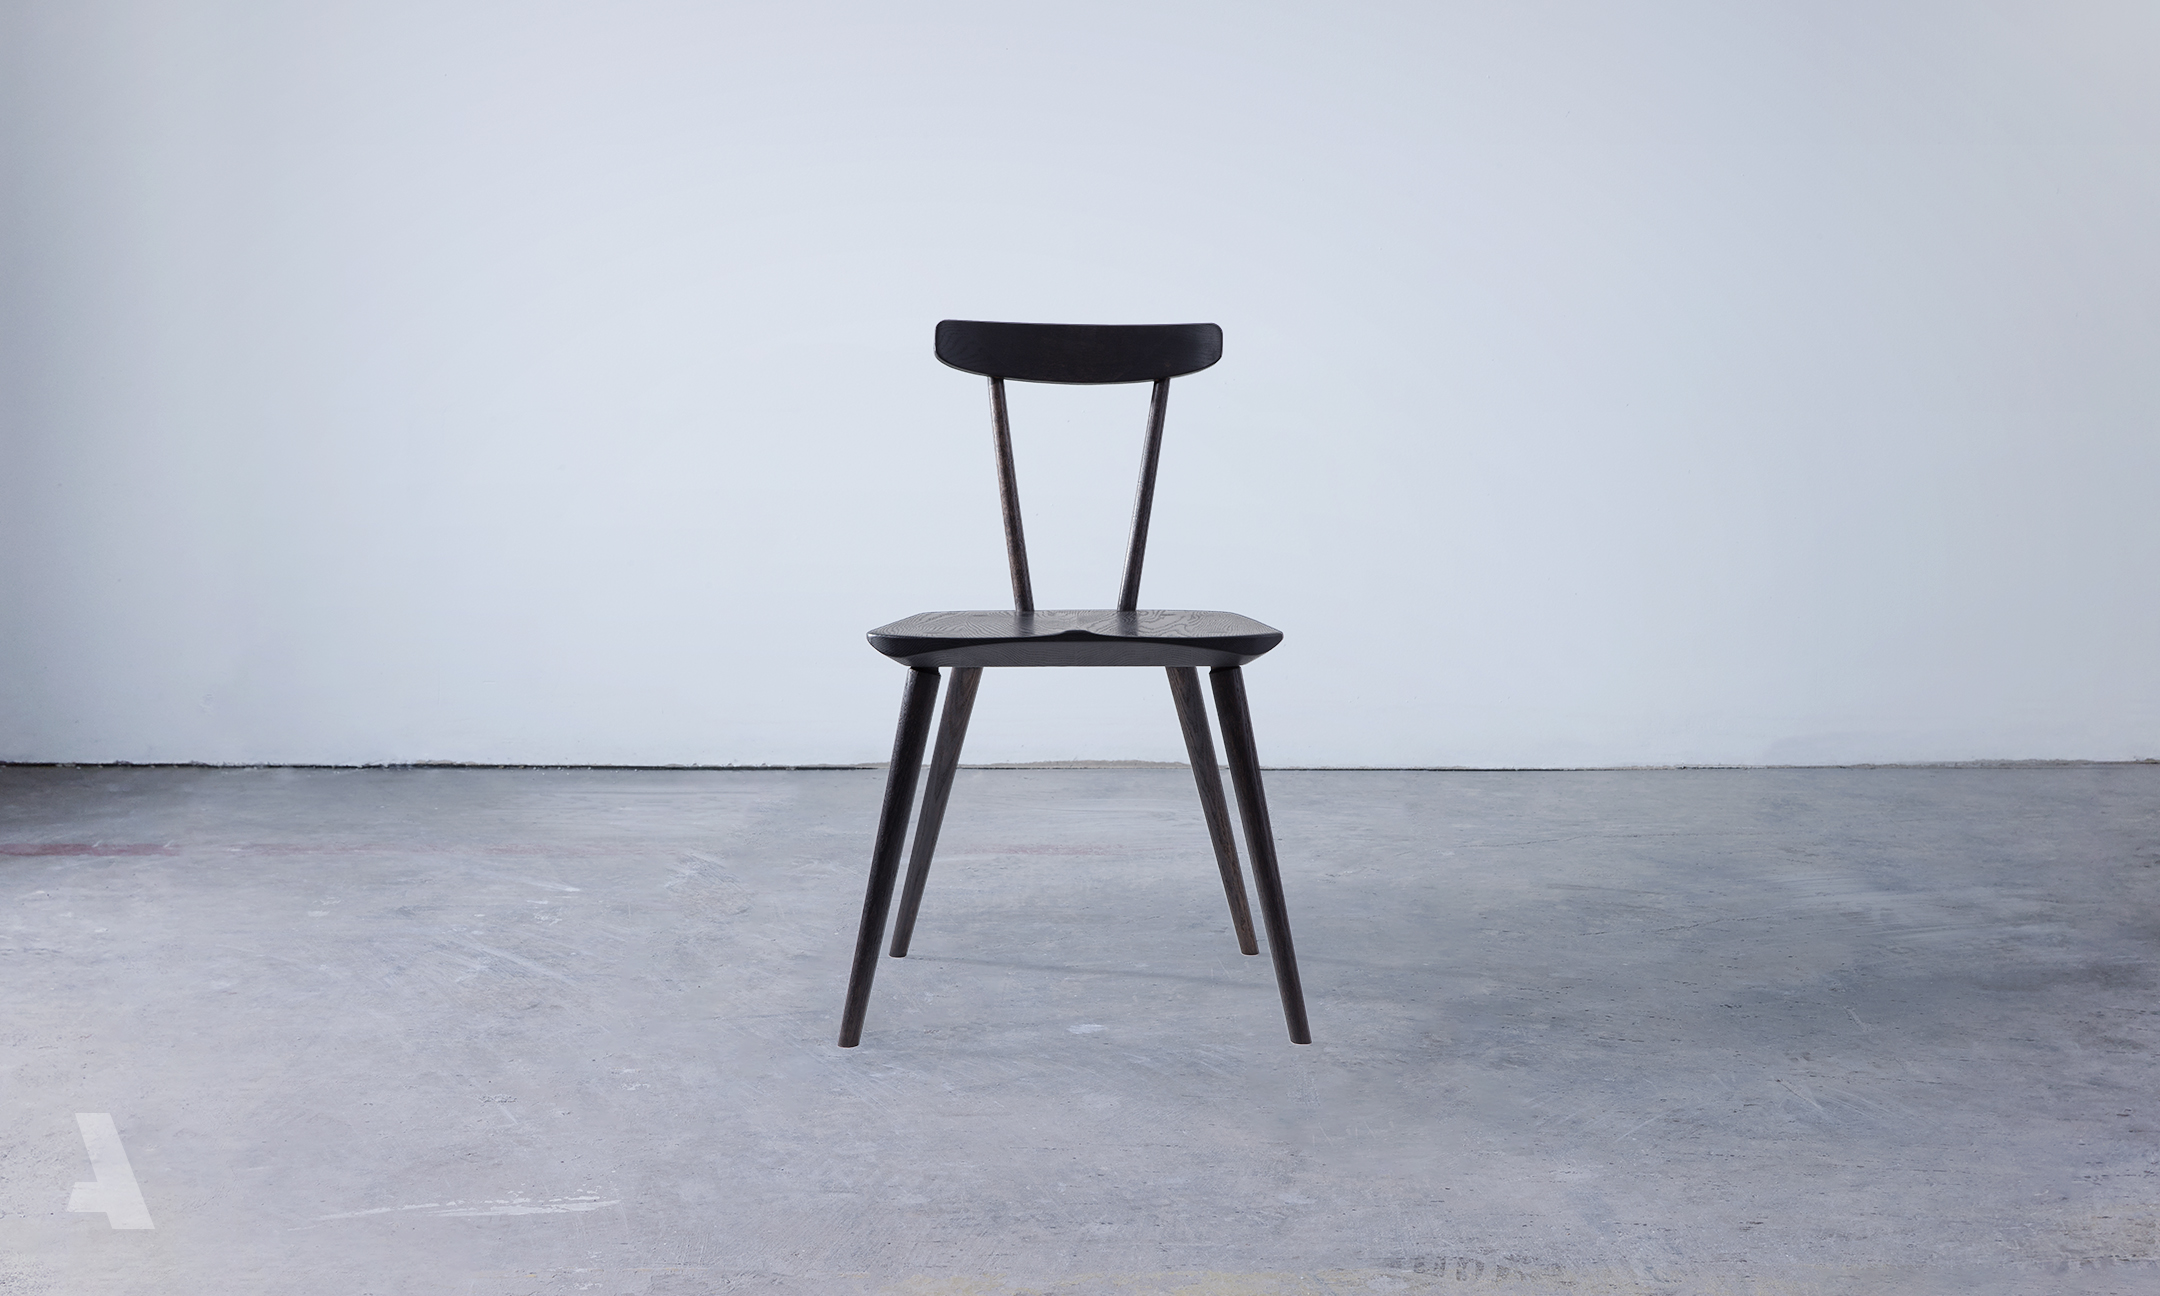 Gallery_Chair_0006_Chair-007.jpg